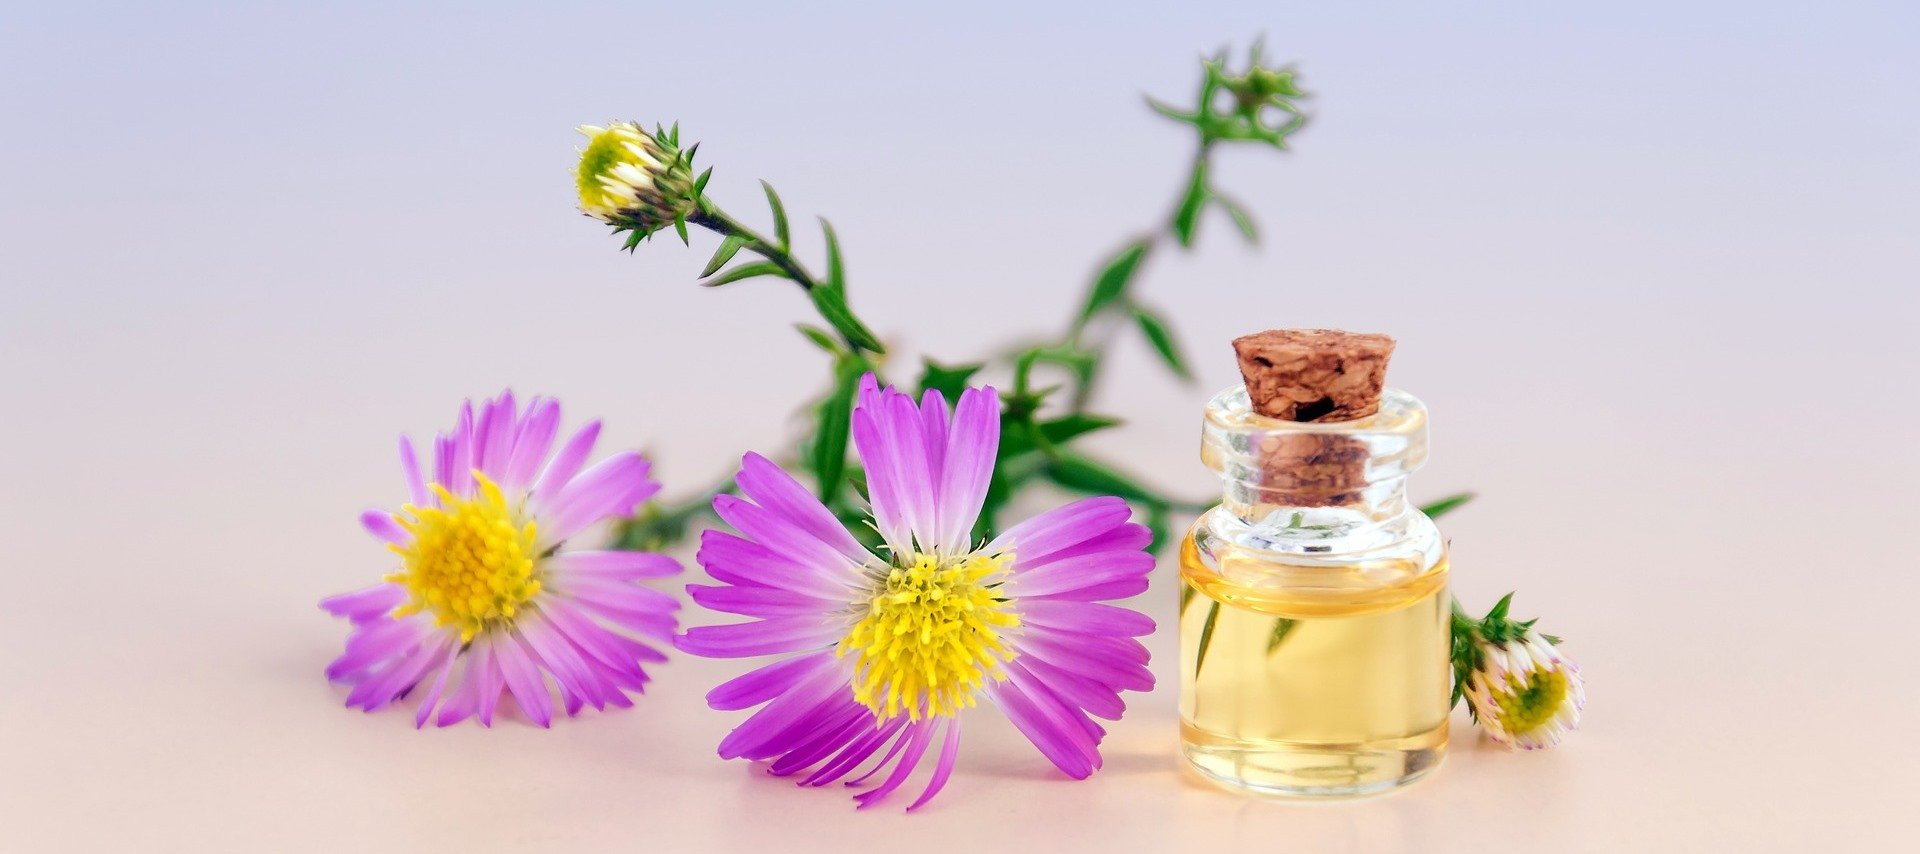 HOW TO USE HEMORRHOIDS OILS Heal Your Hemorrhoids